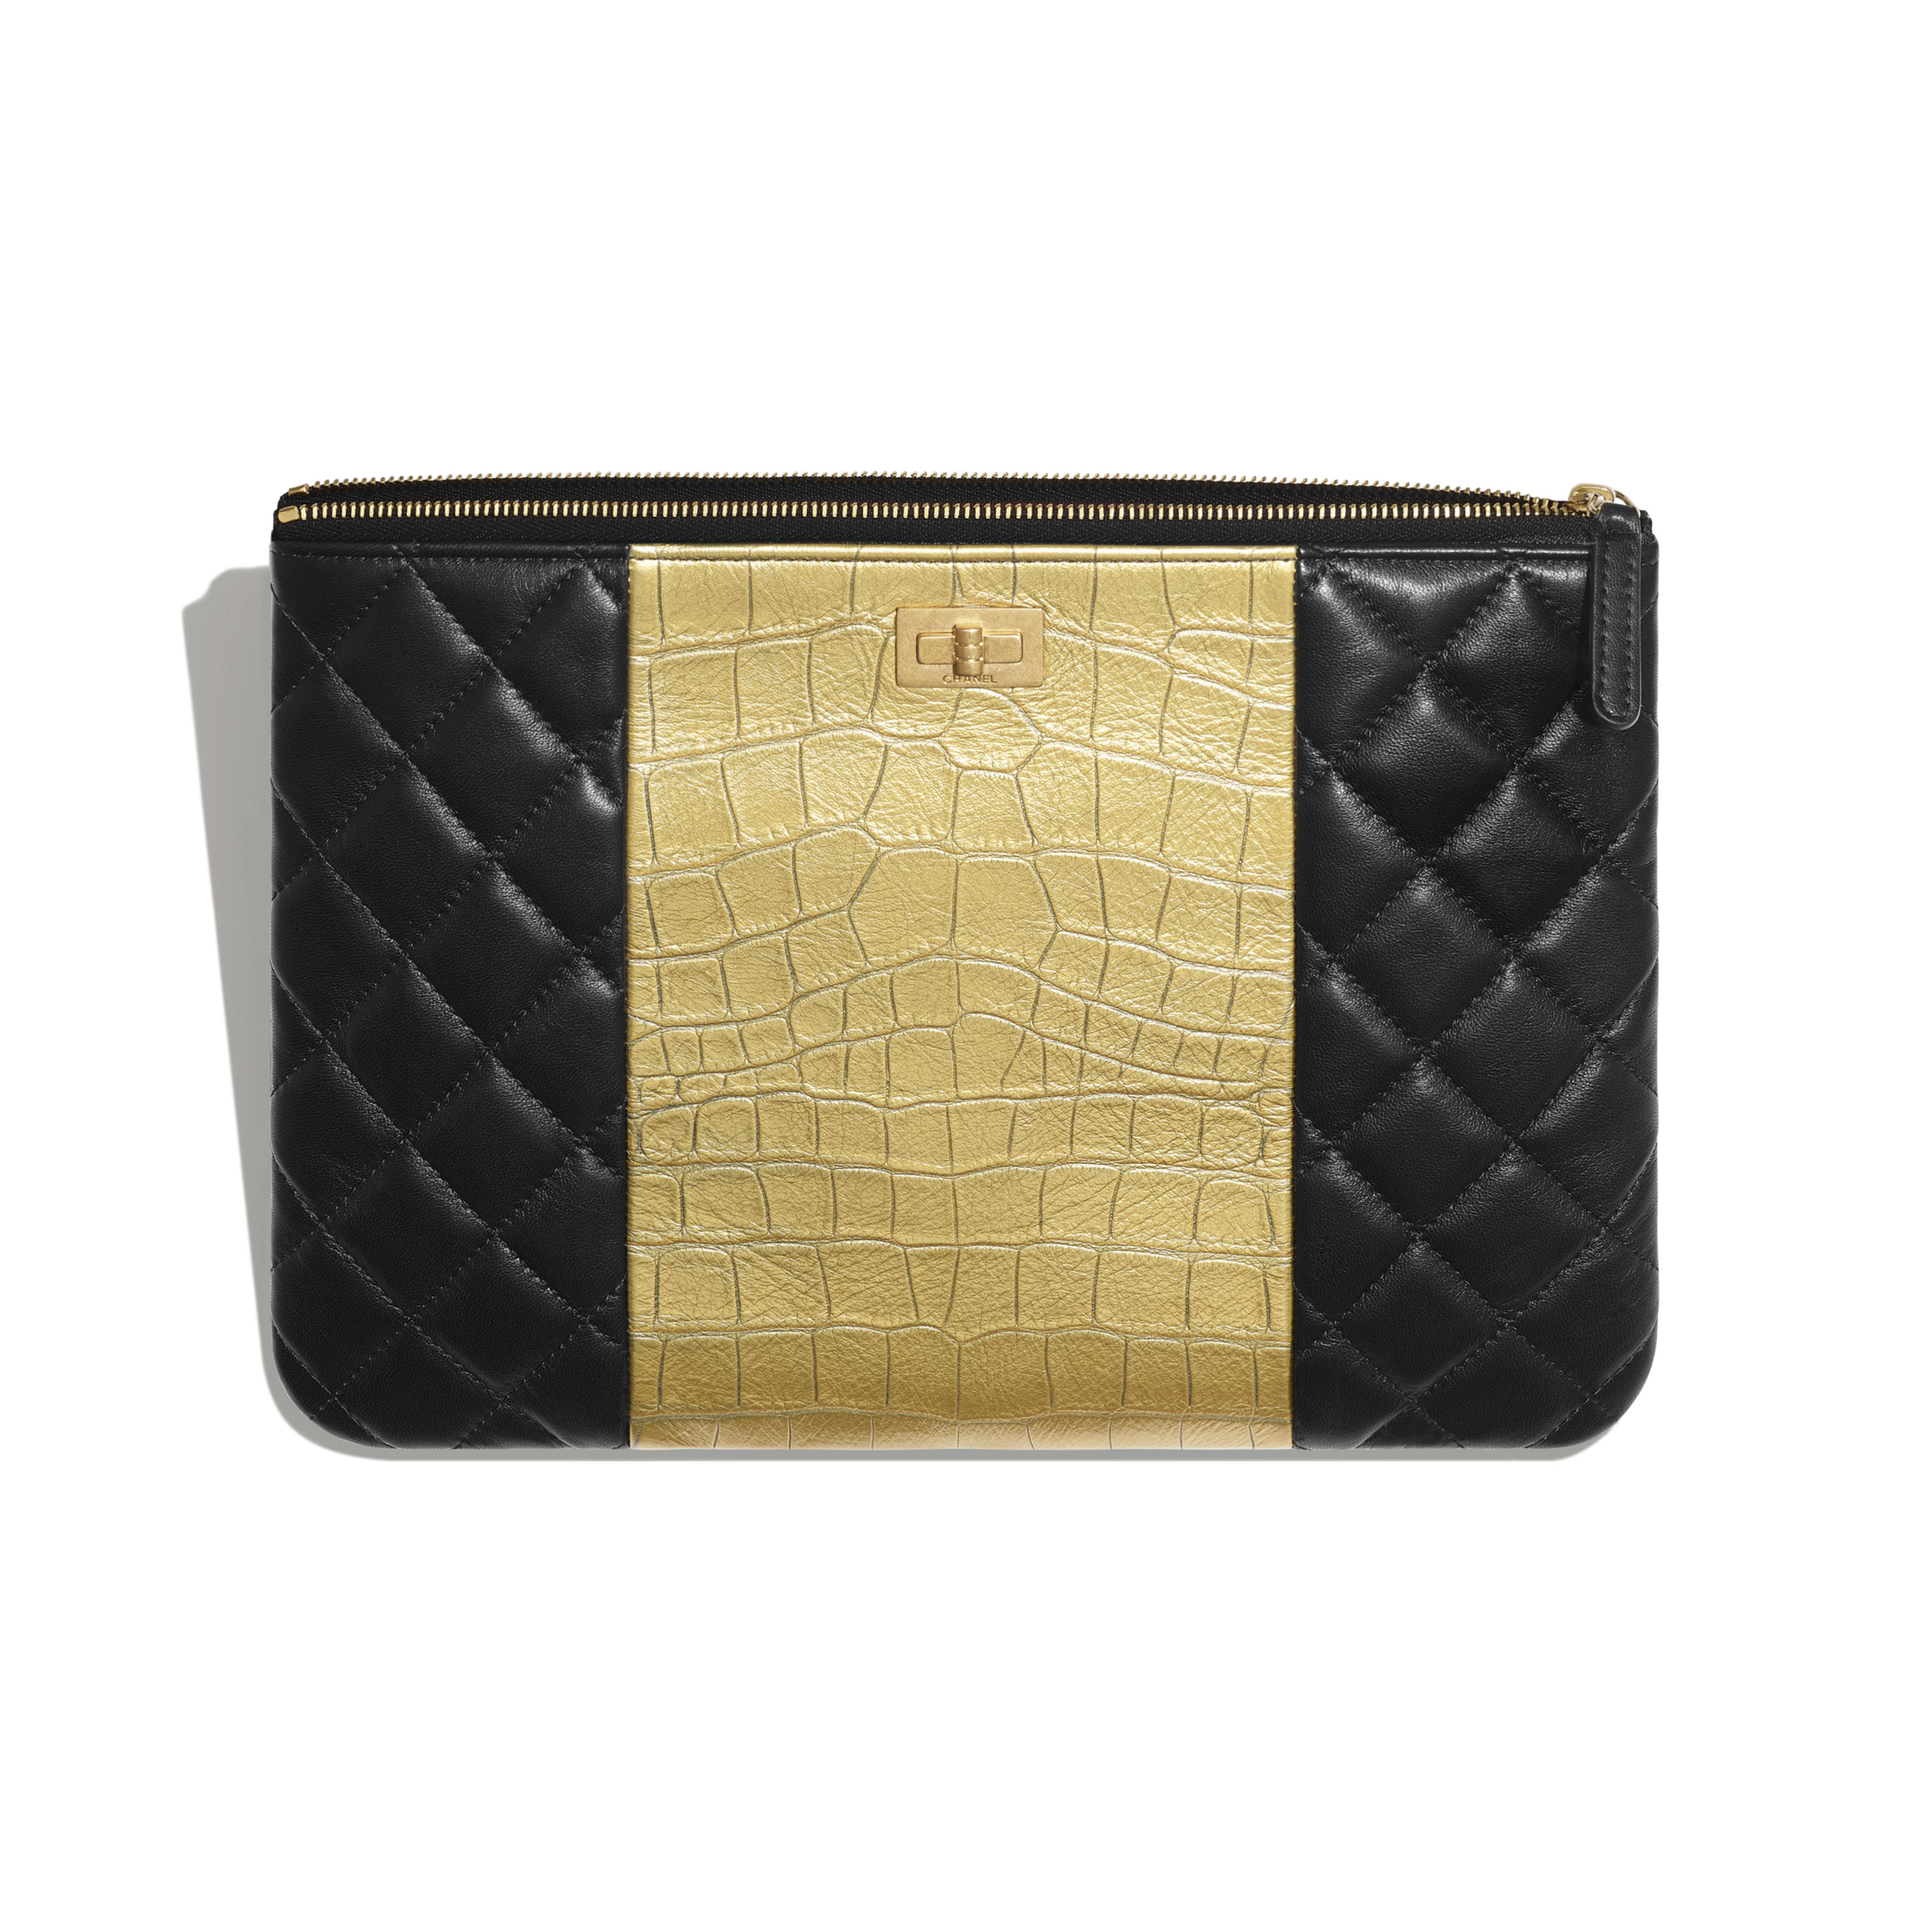 2.55 Pouch - Black & Gold - Lambskin, Crocodile Embossed Calfskin & Gold-Tone Metal - Other view - see full sized version